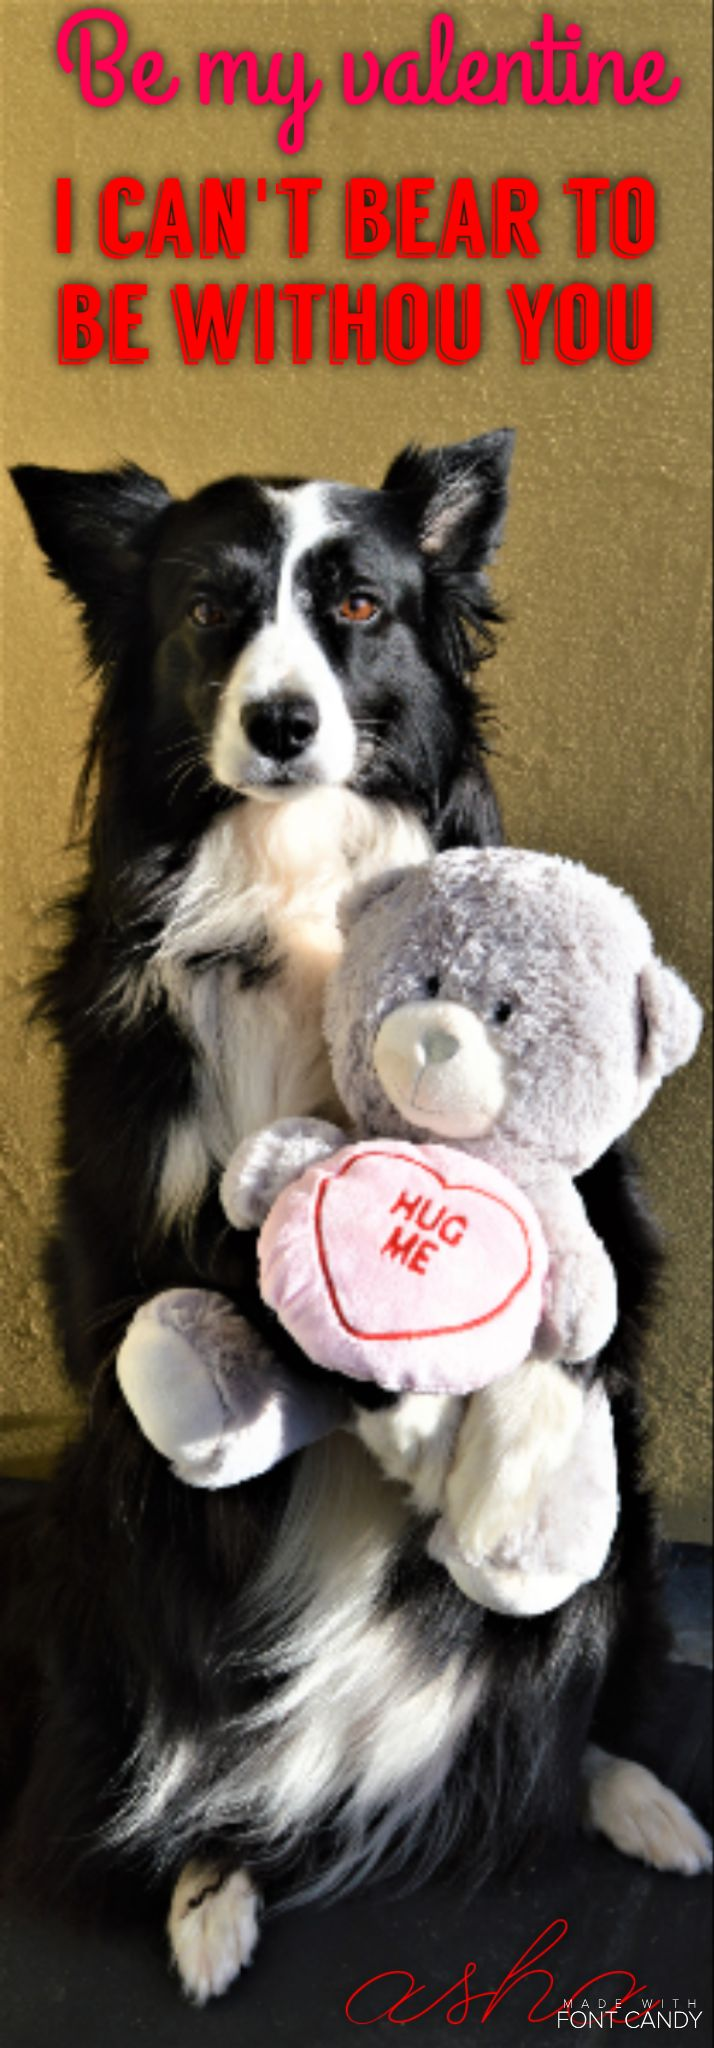 BE MY VALENTINE I CAN'T BEAR TO BE WITHOUT YOU?